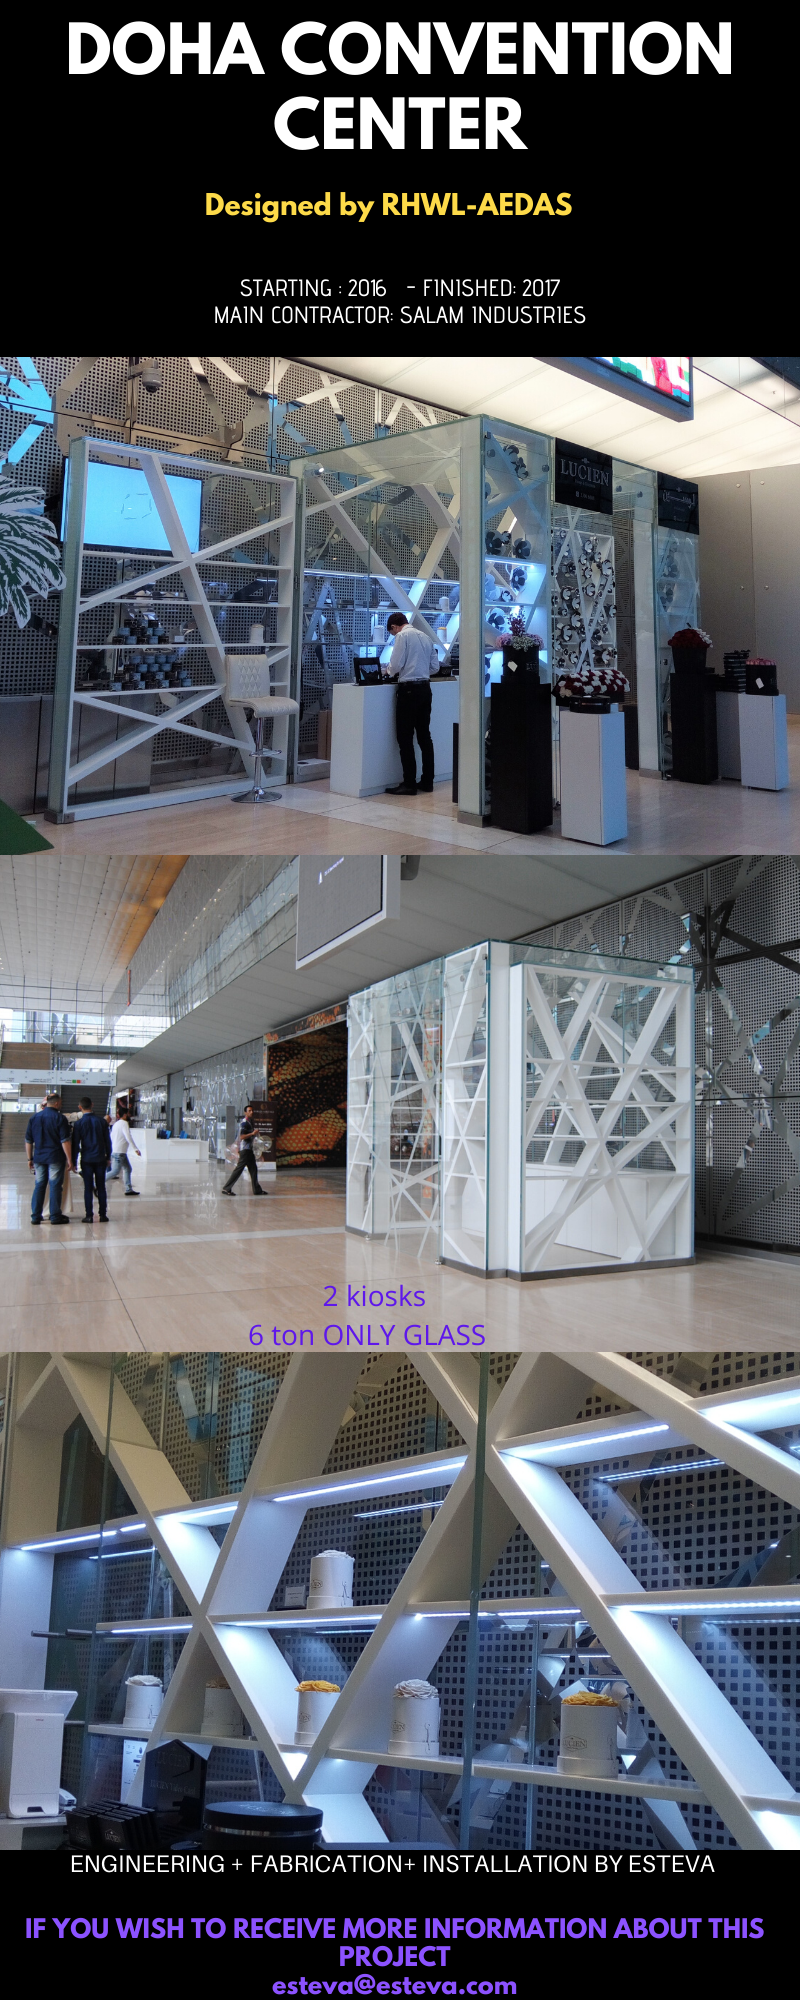 DOHA CONVENTION CENTER GLASS KIOSK